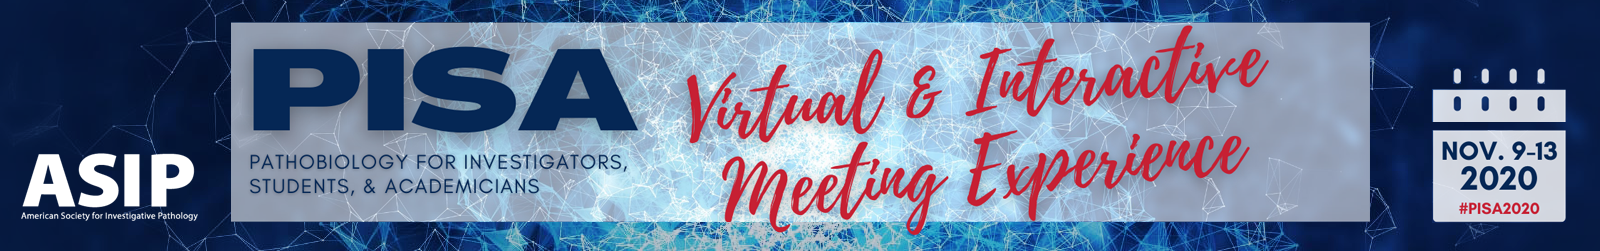 PISA 2020 - Virtual and Interactive Meeting Experience